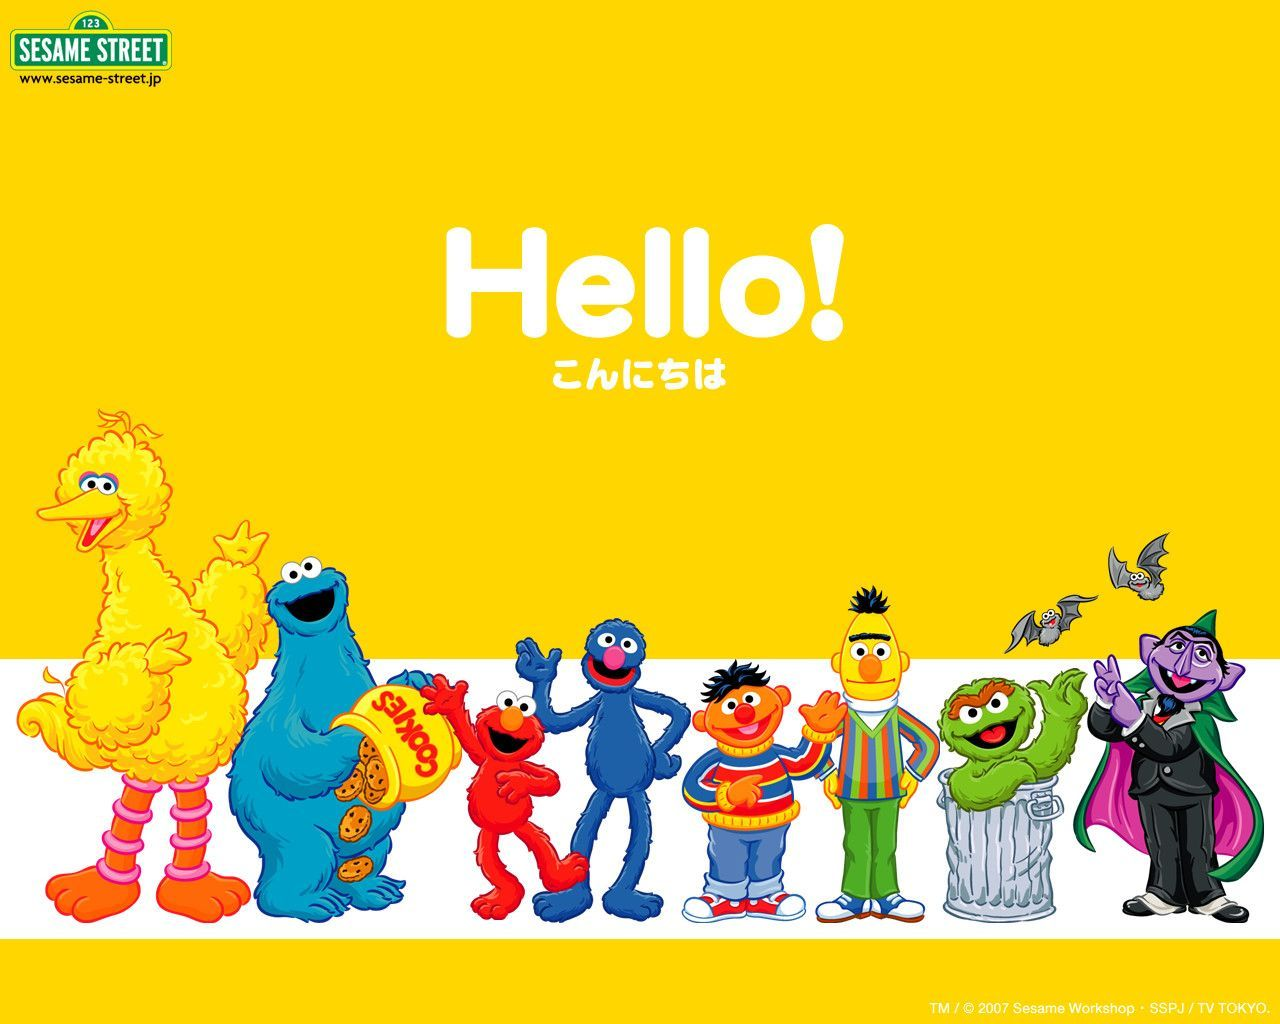 Sesame Street Wallpapers